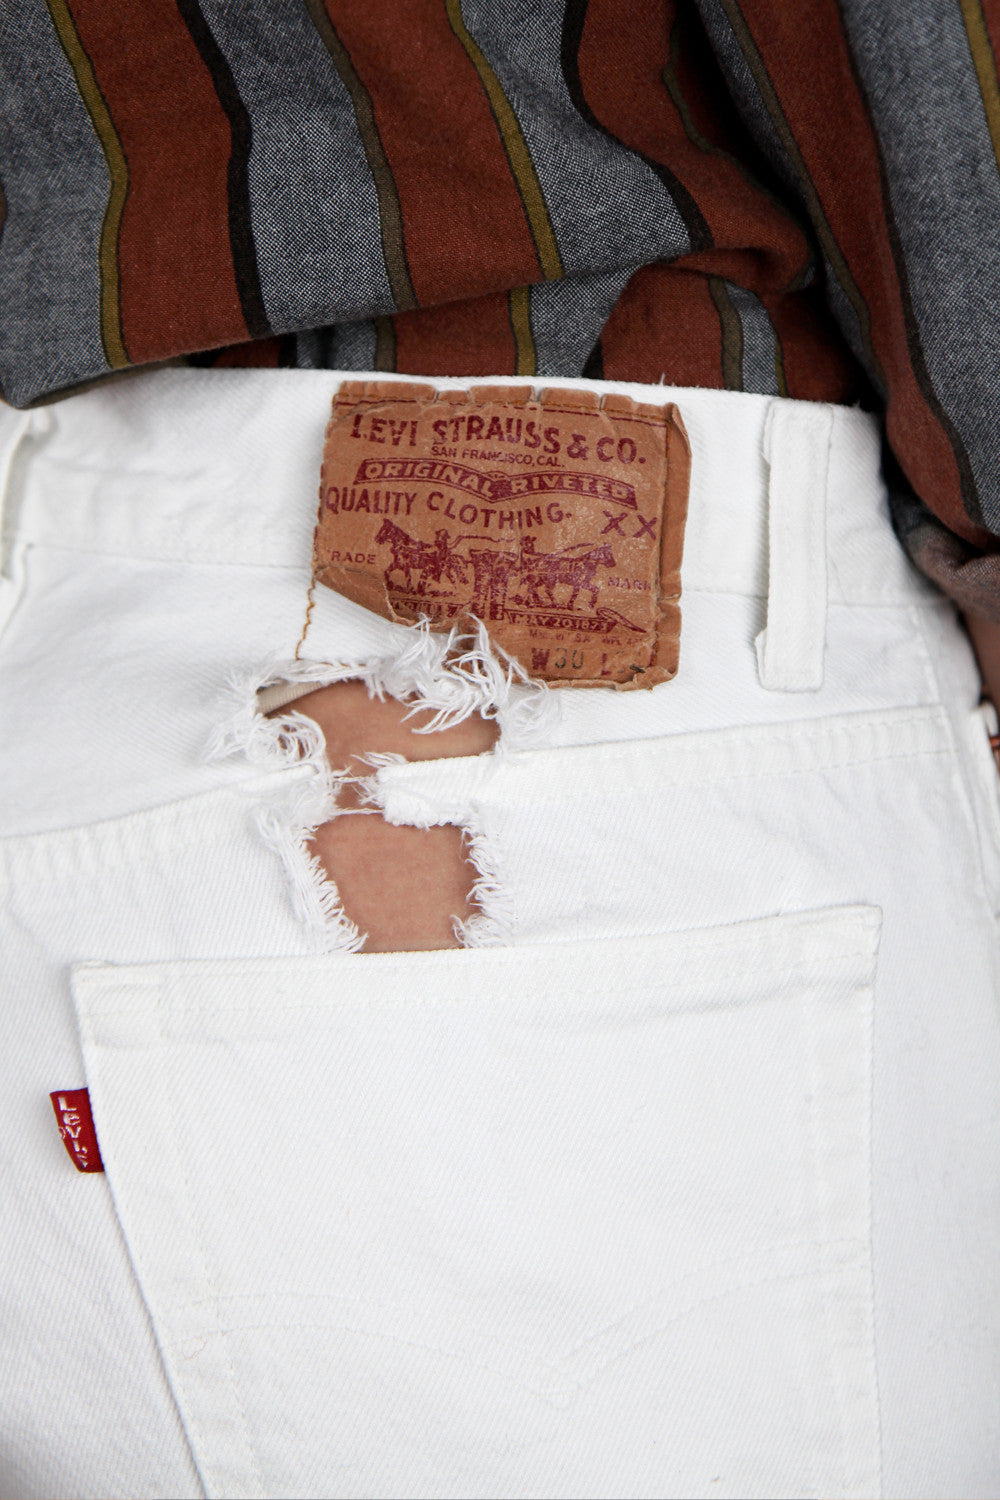 White Levi's 501s Ripped Rear 28X28